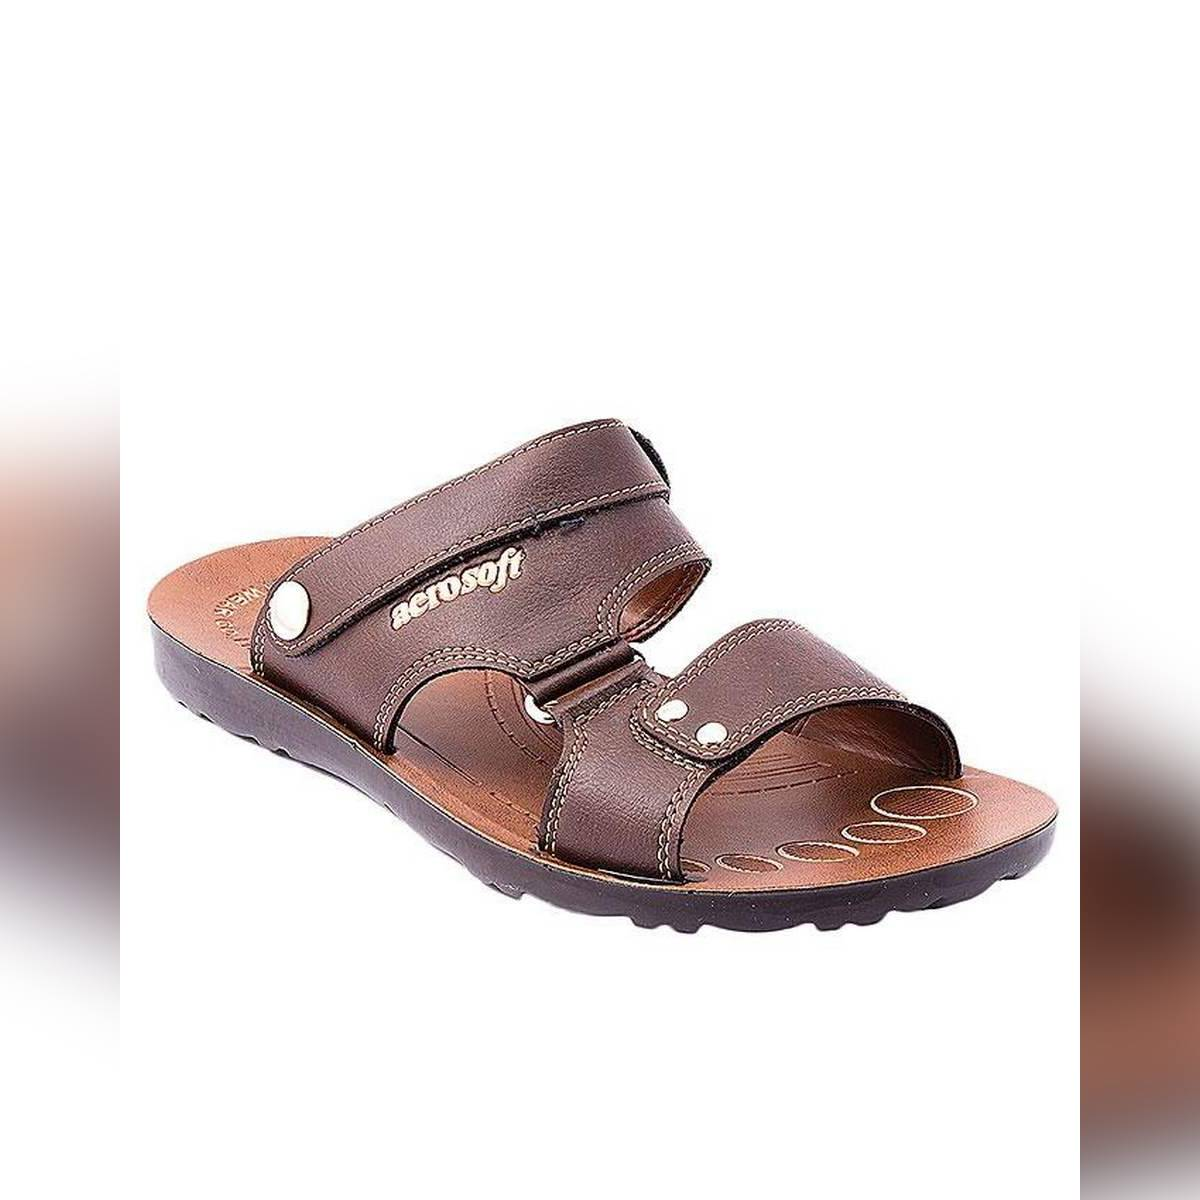 Aerosoft Soft Brown Synthetic Leather Sandals For Men P0111